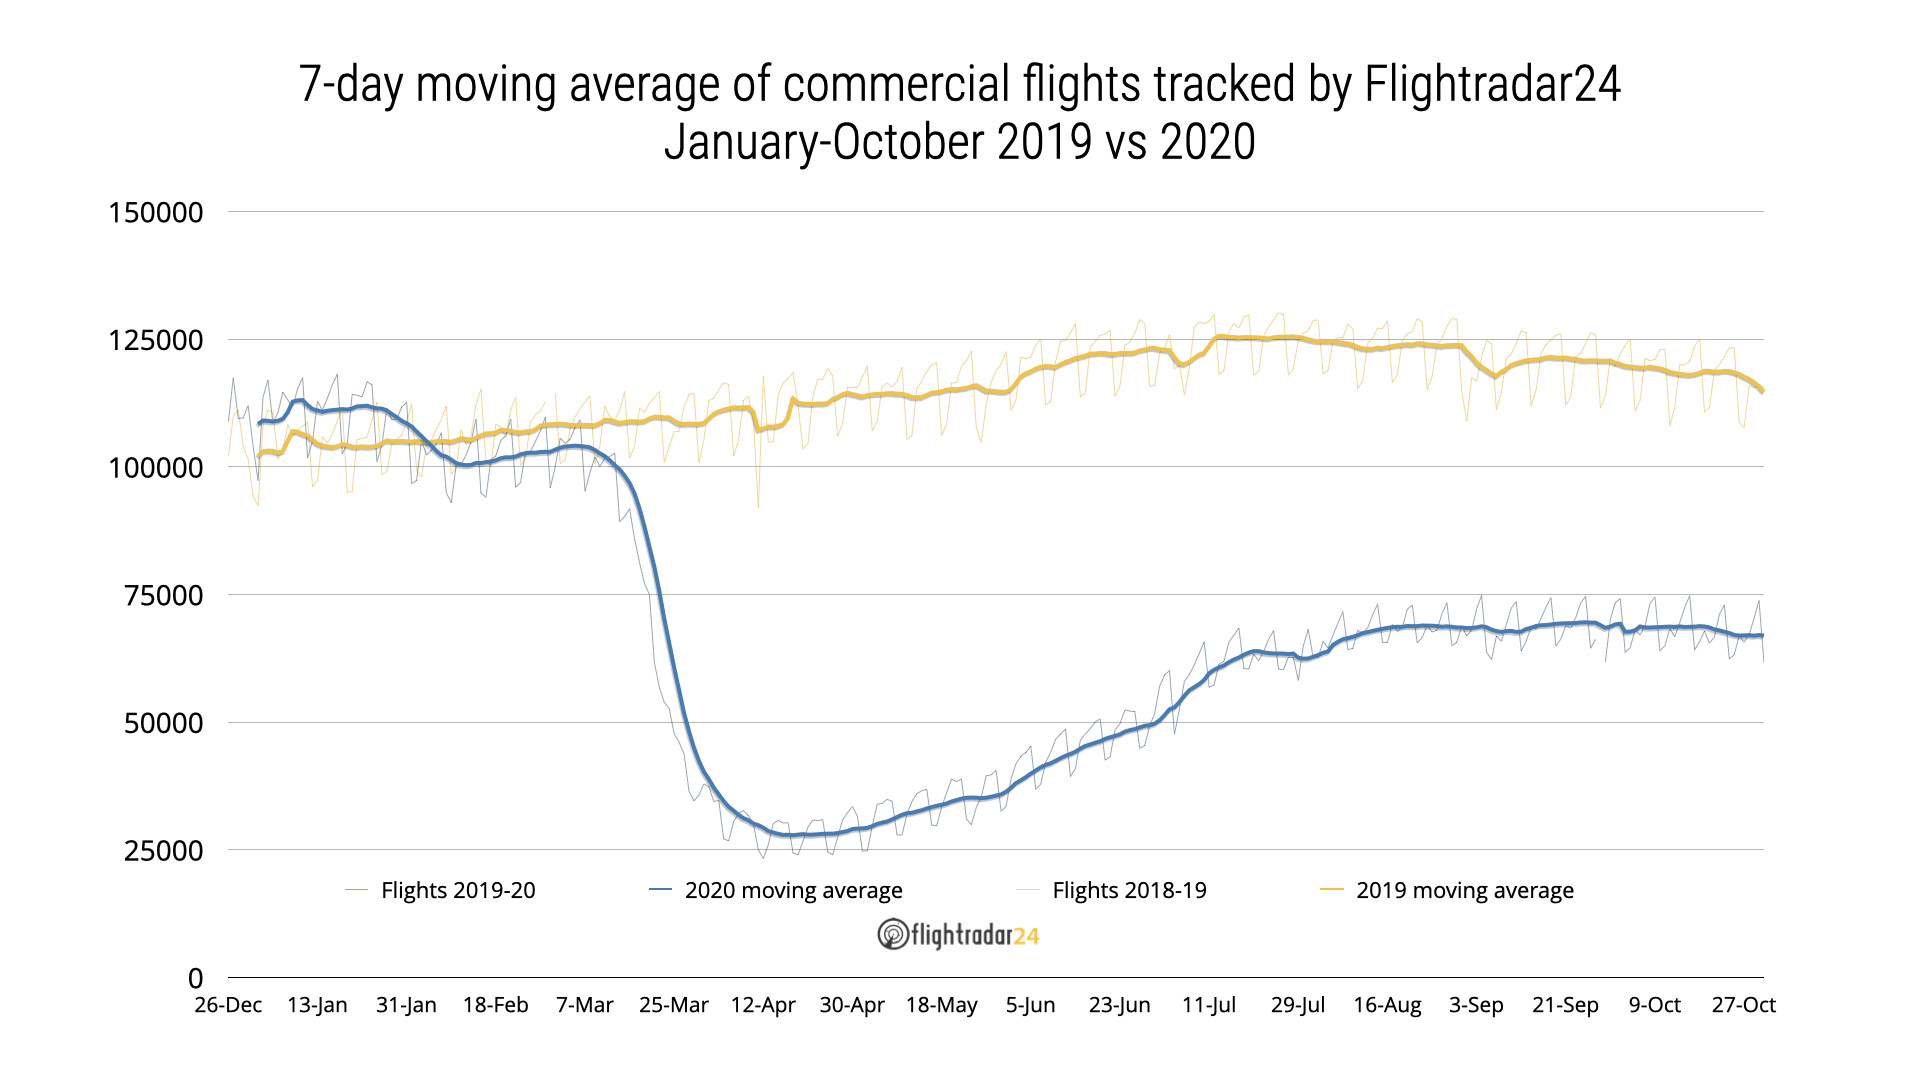 Commerical flights Jan to Oct 2019 vs 2020